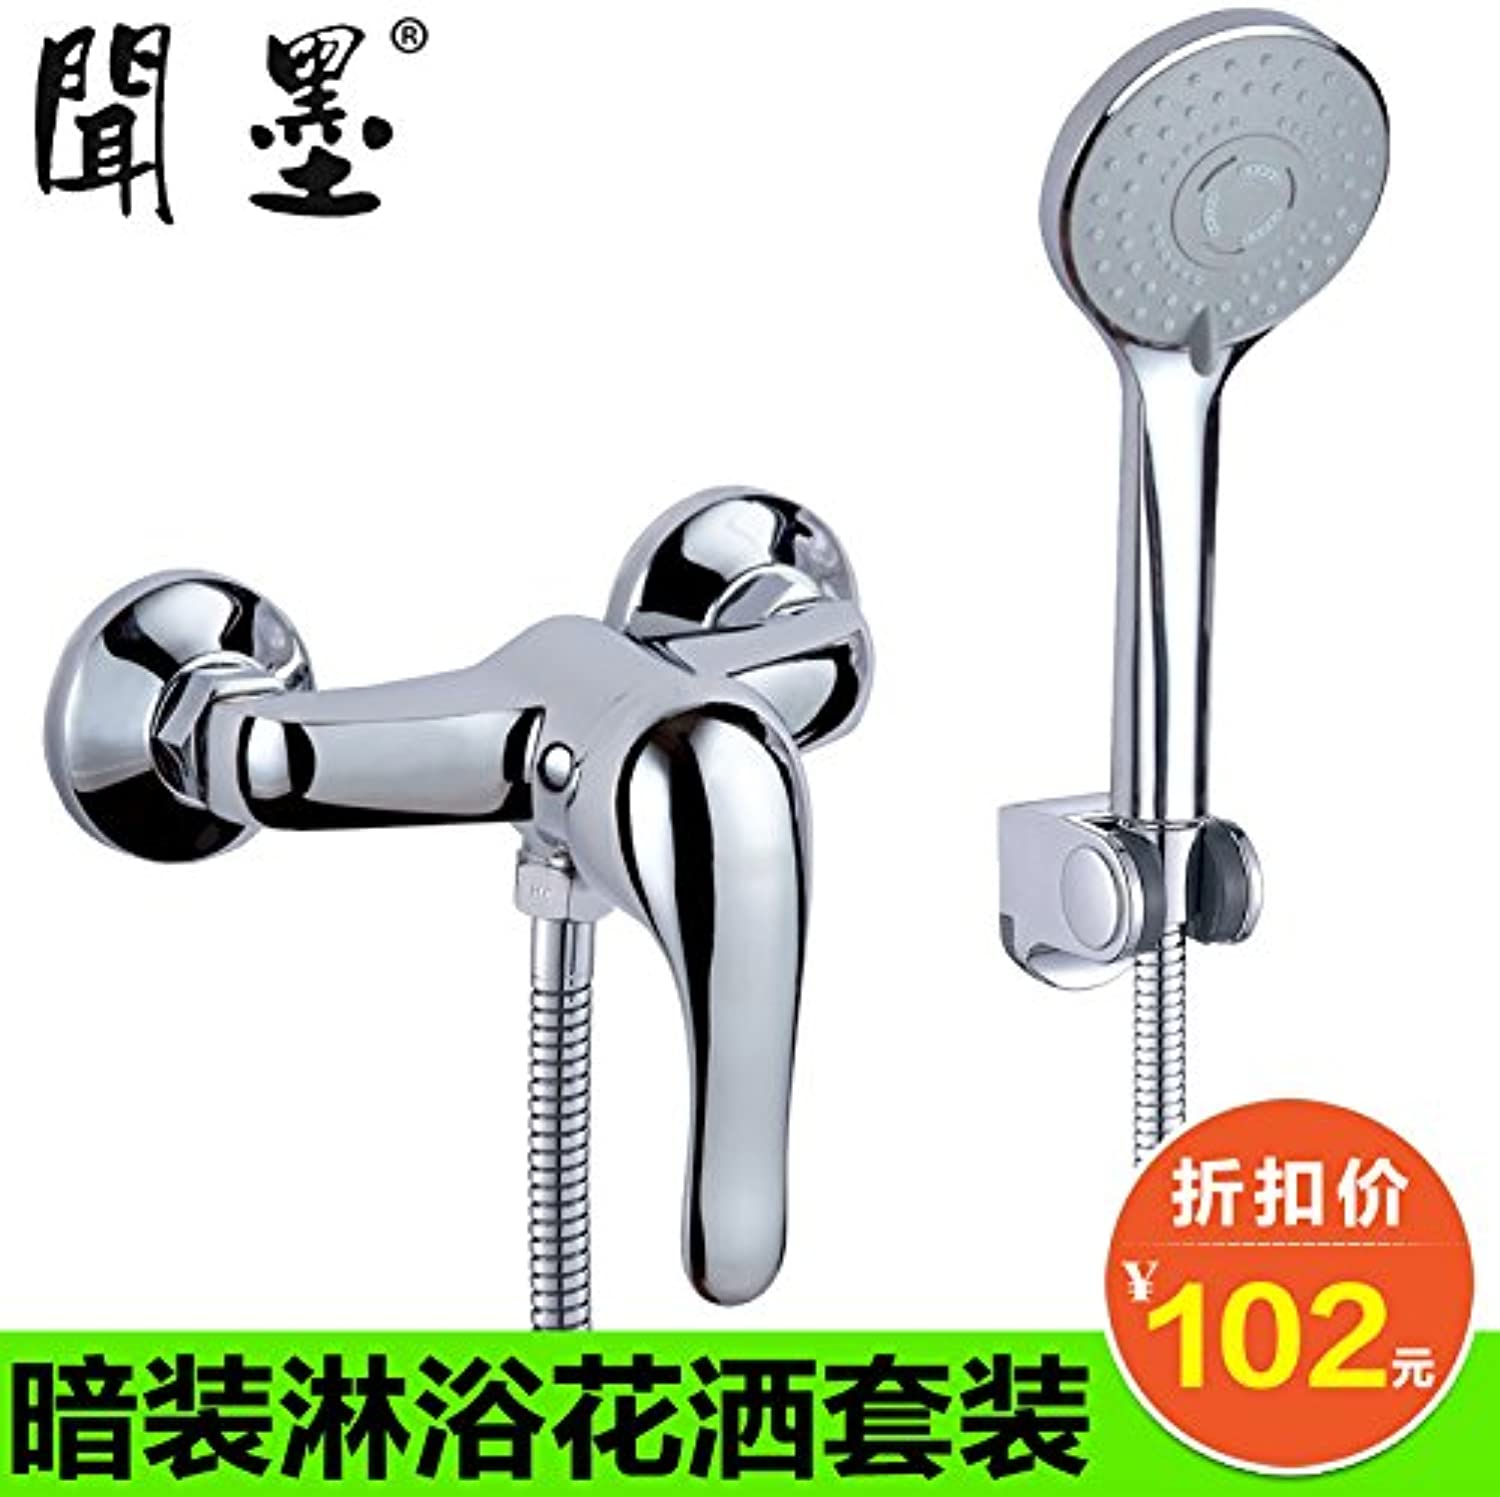 Gyps Faucet Single Lever Mixer Tap Shower Faucet Shower Tap Bathroom Full Copper Hot Cold Water Mixing Valve Sink Bath Shower Tap System Kit Set